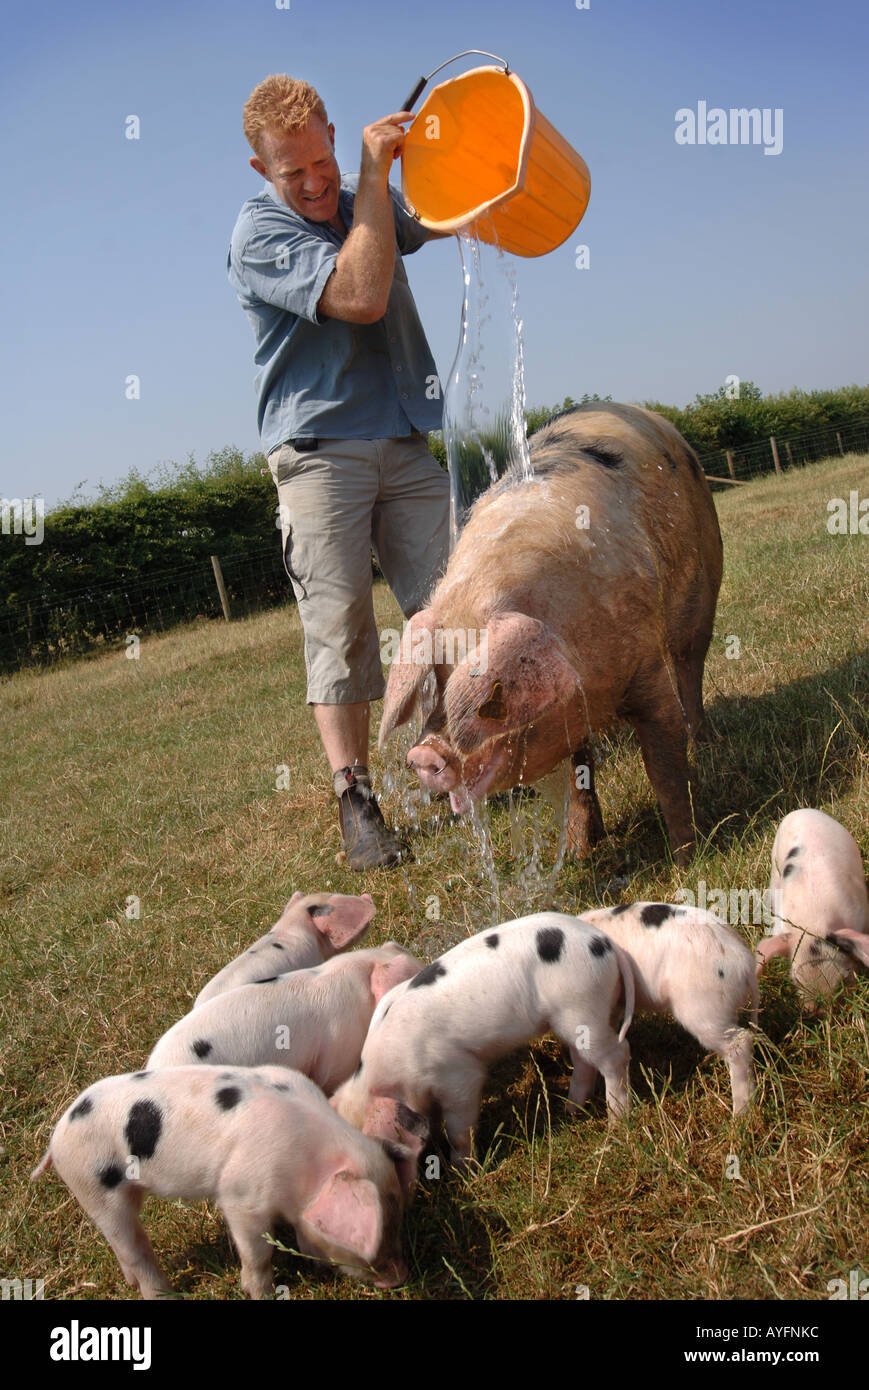 COUNTRYFILE TV PRESENTER AND OWNER OF THE COTSWOLD FARM PARK ADAM HENSON POURING A BUCKET OF WATER OVER A GLOUCESTER OLD SPOT PI - Stock Image